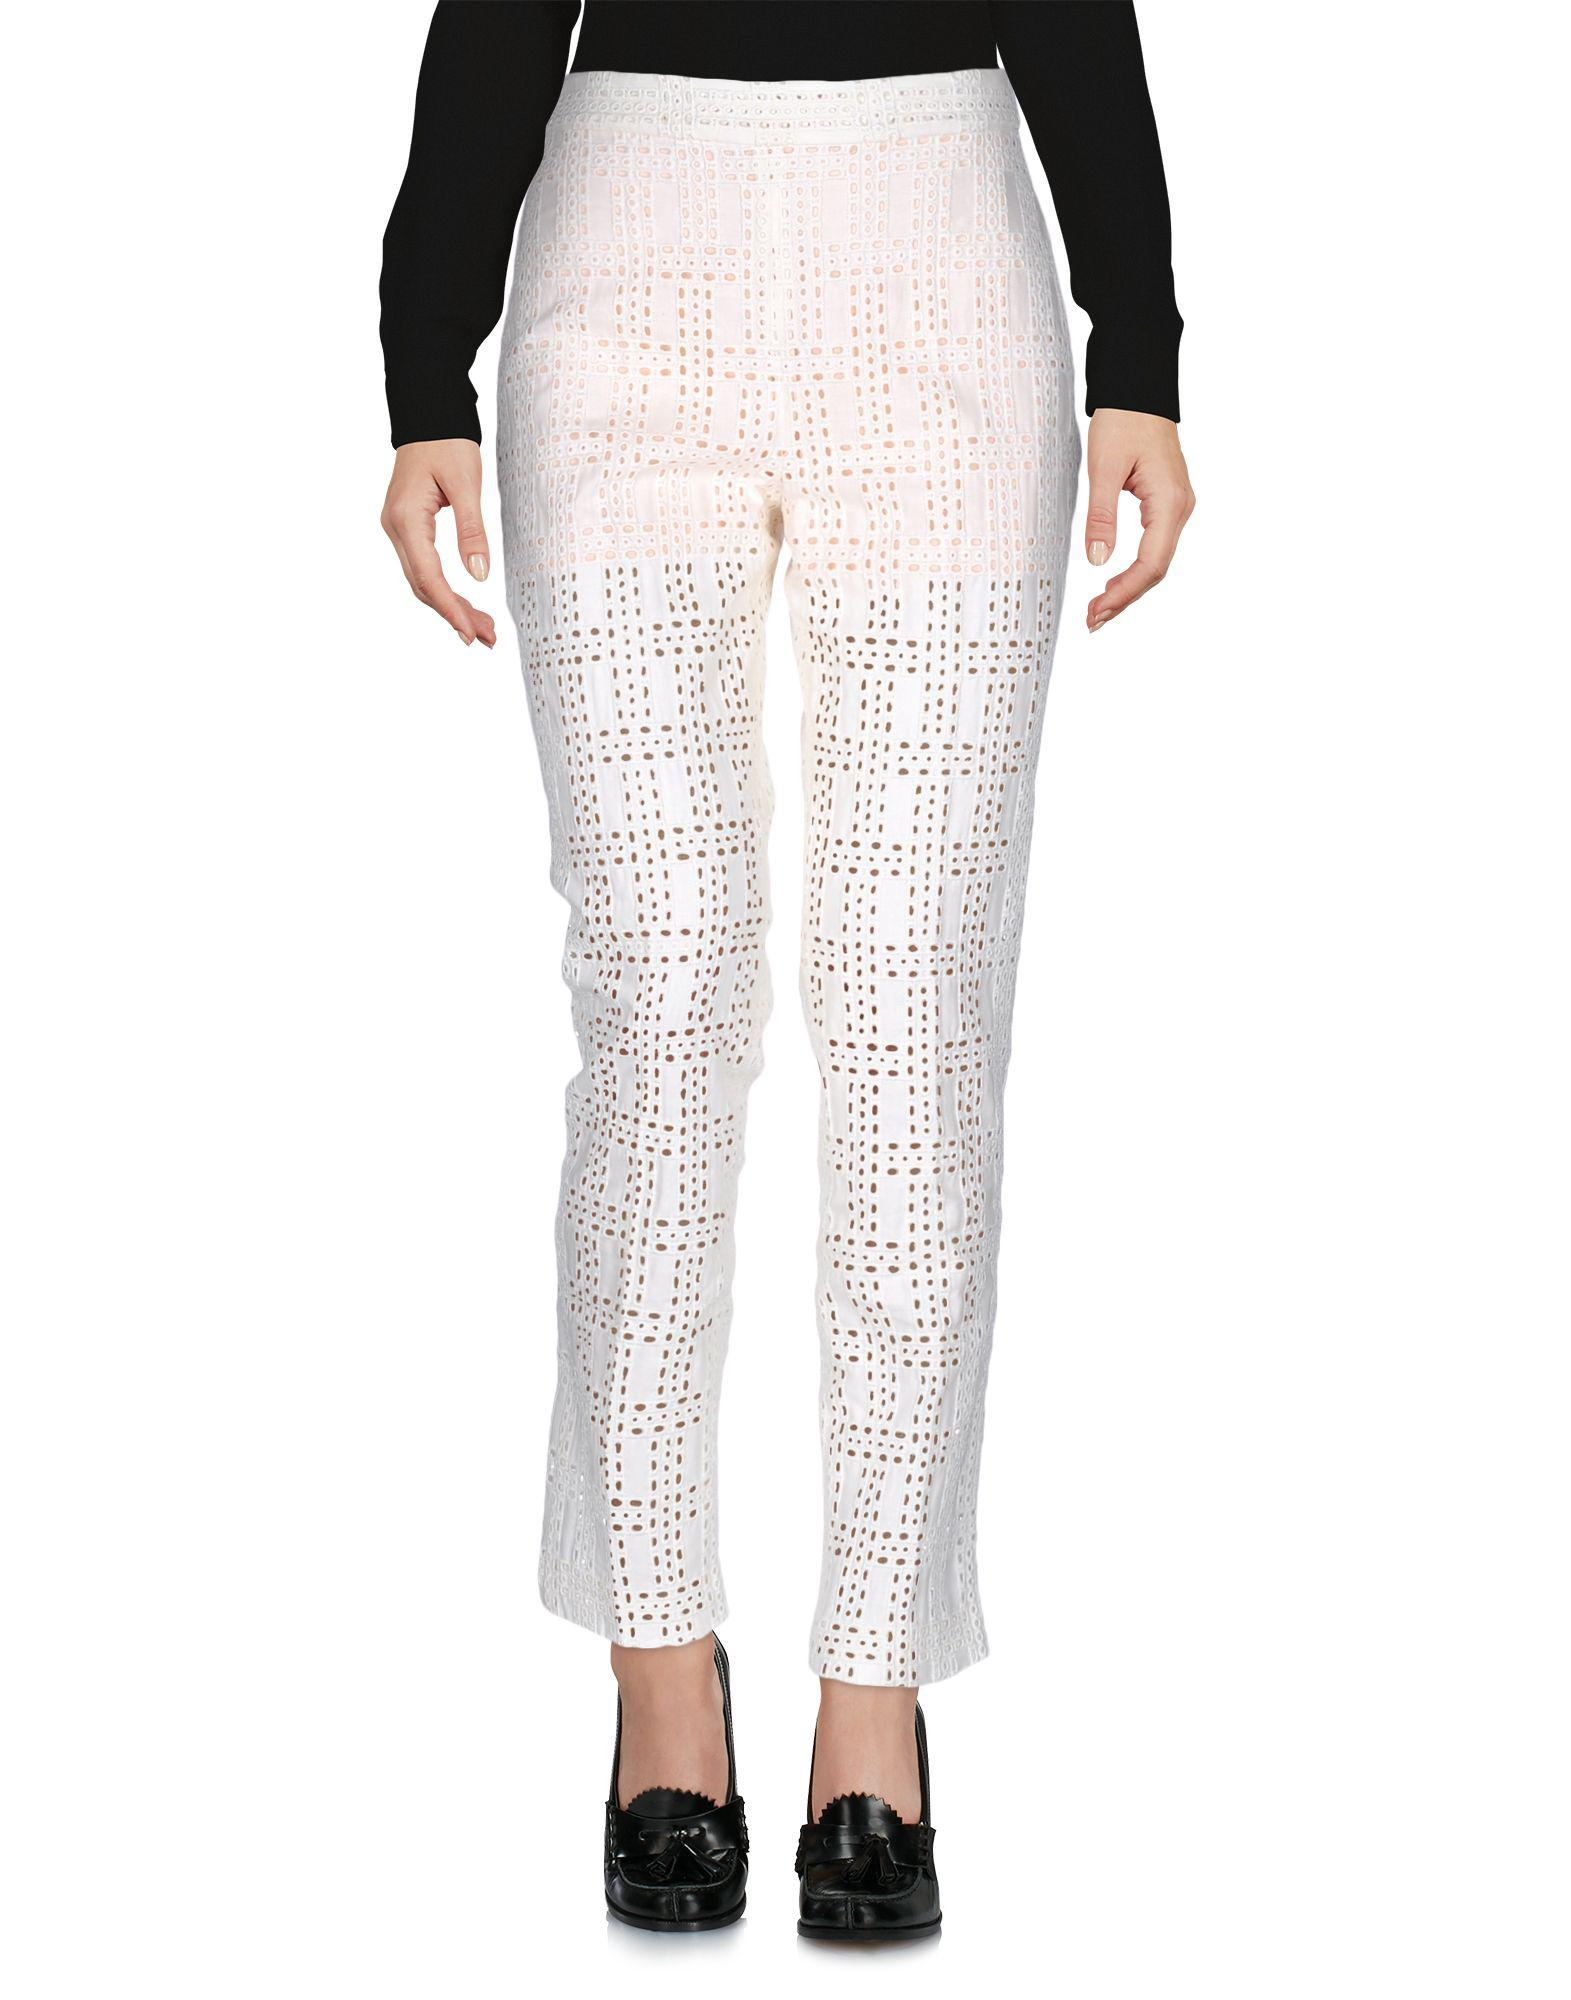 TROUSERS - Casual trousers Emanuel Ungaro 7IBME3